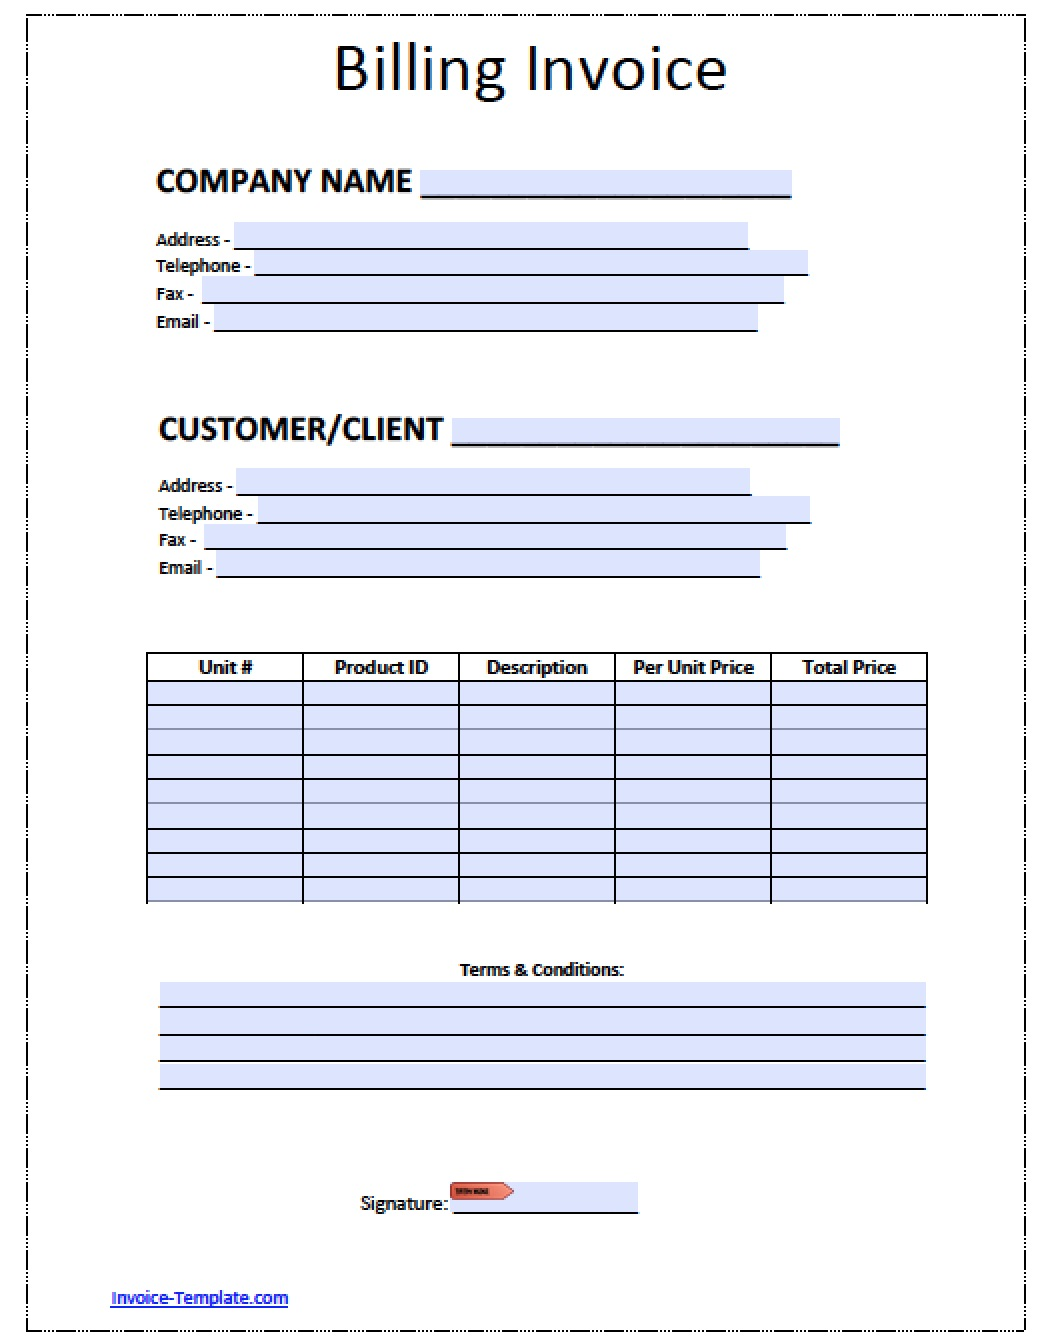 Free Billing Invoice Template Excel PDF Word Doc - Free invoice template word document t mobile online store